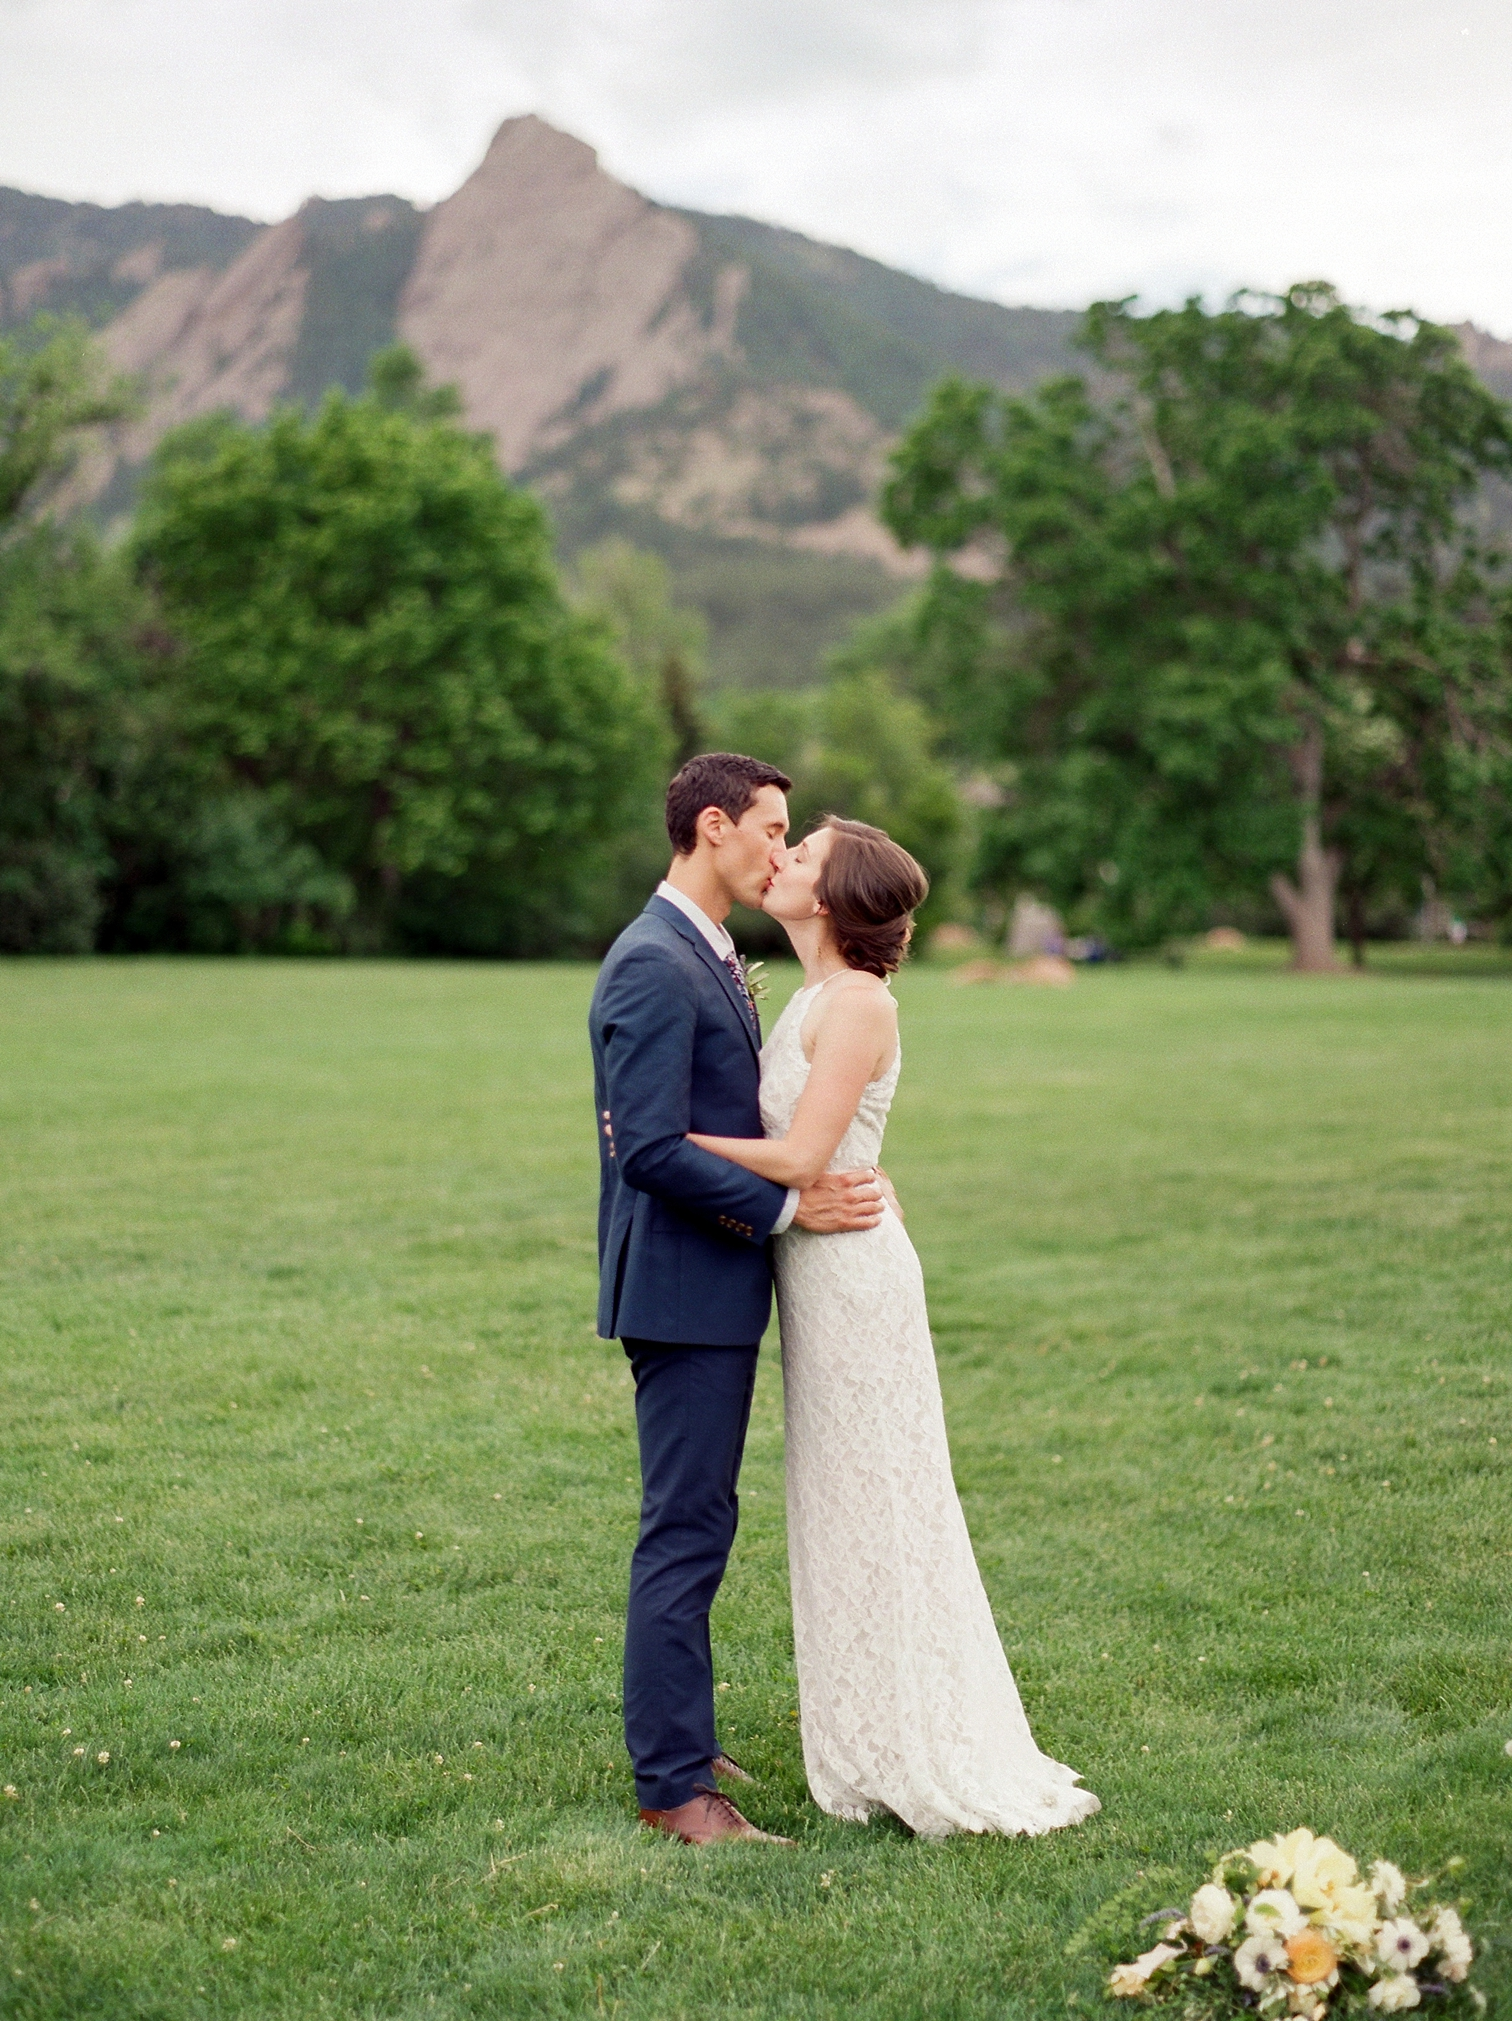 Chautauqua Dining Hall Wedding, Film Wedding Photos, Outdoor Wedding Details, Colorado Mountain Weddings, Danielle DeFiore Photographer, Destination Wedding Photographers, Weddings in Boulder Colorado, Outdoor Ceremony, Film Photographer, Summer Weddings, Bride And Groom Kissing